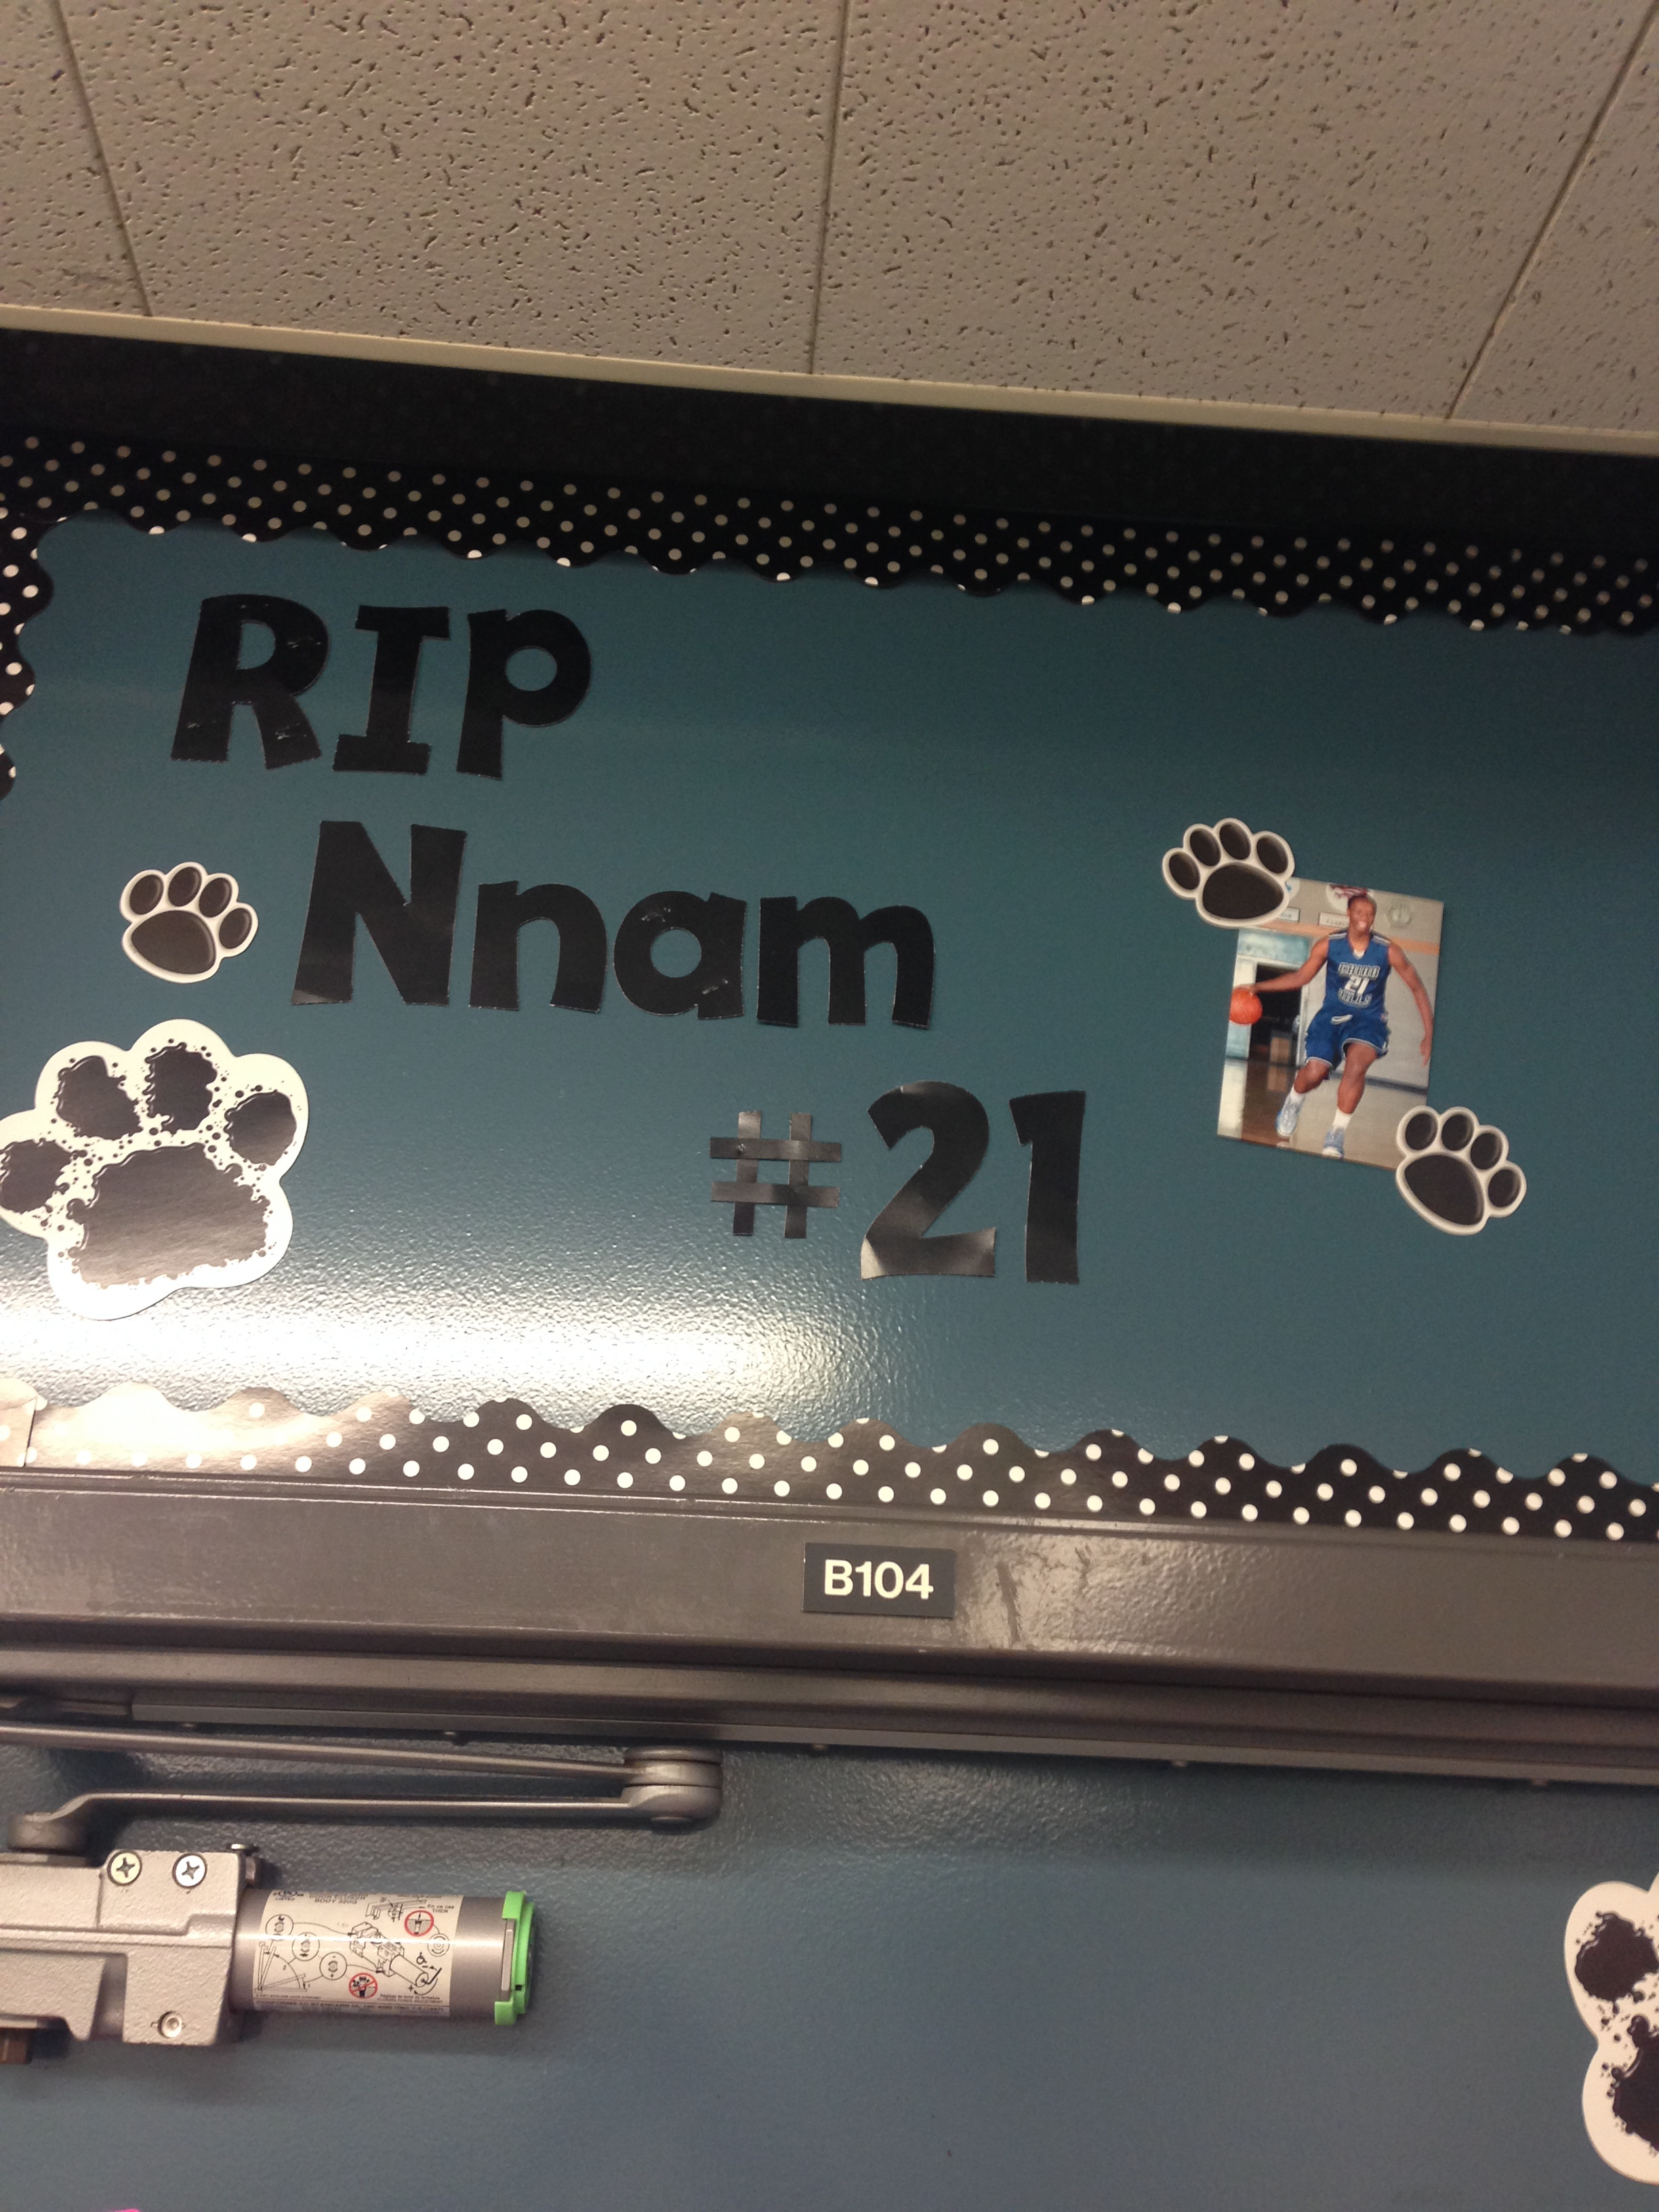 Memorial to Nnamdi over my door (my student who passed this summer)